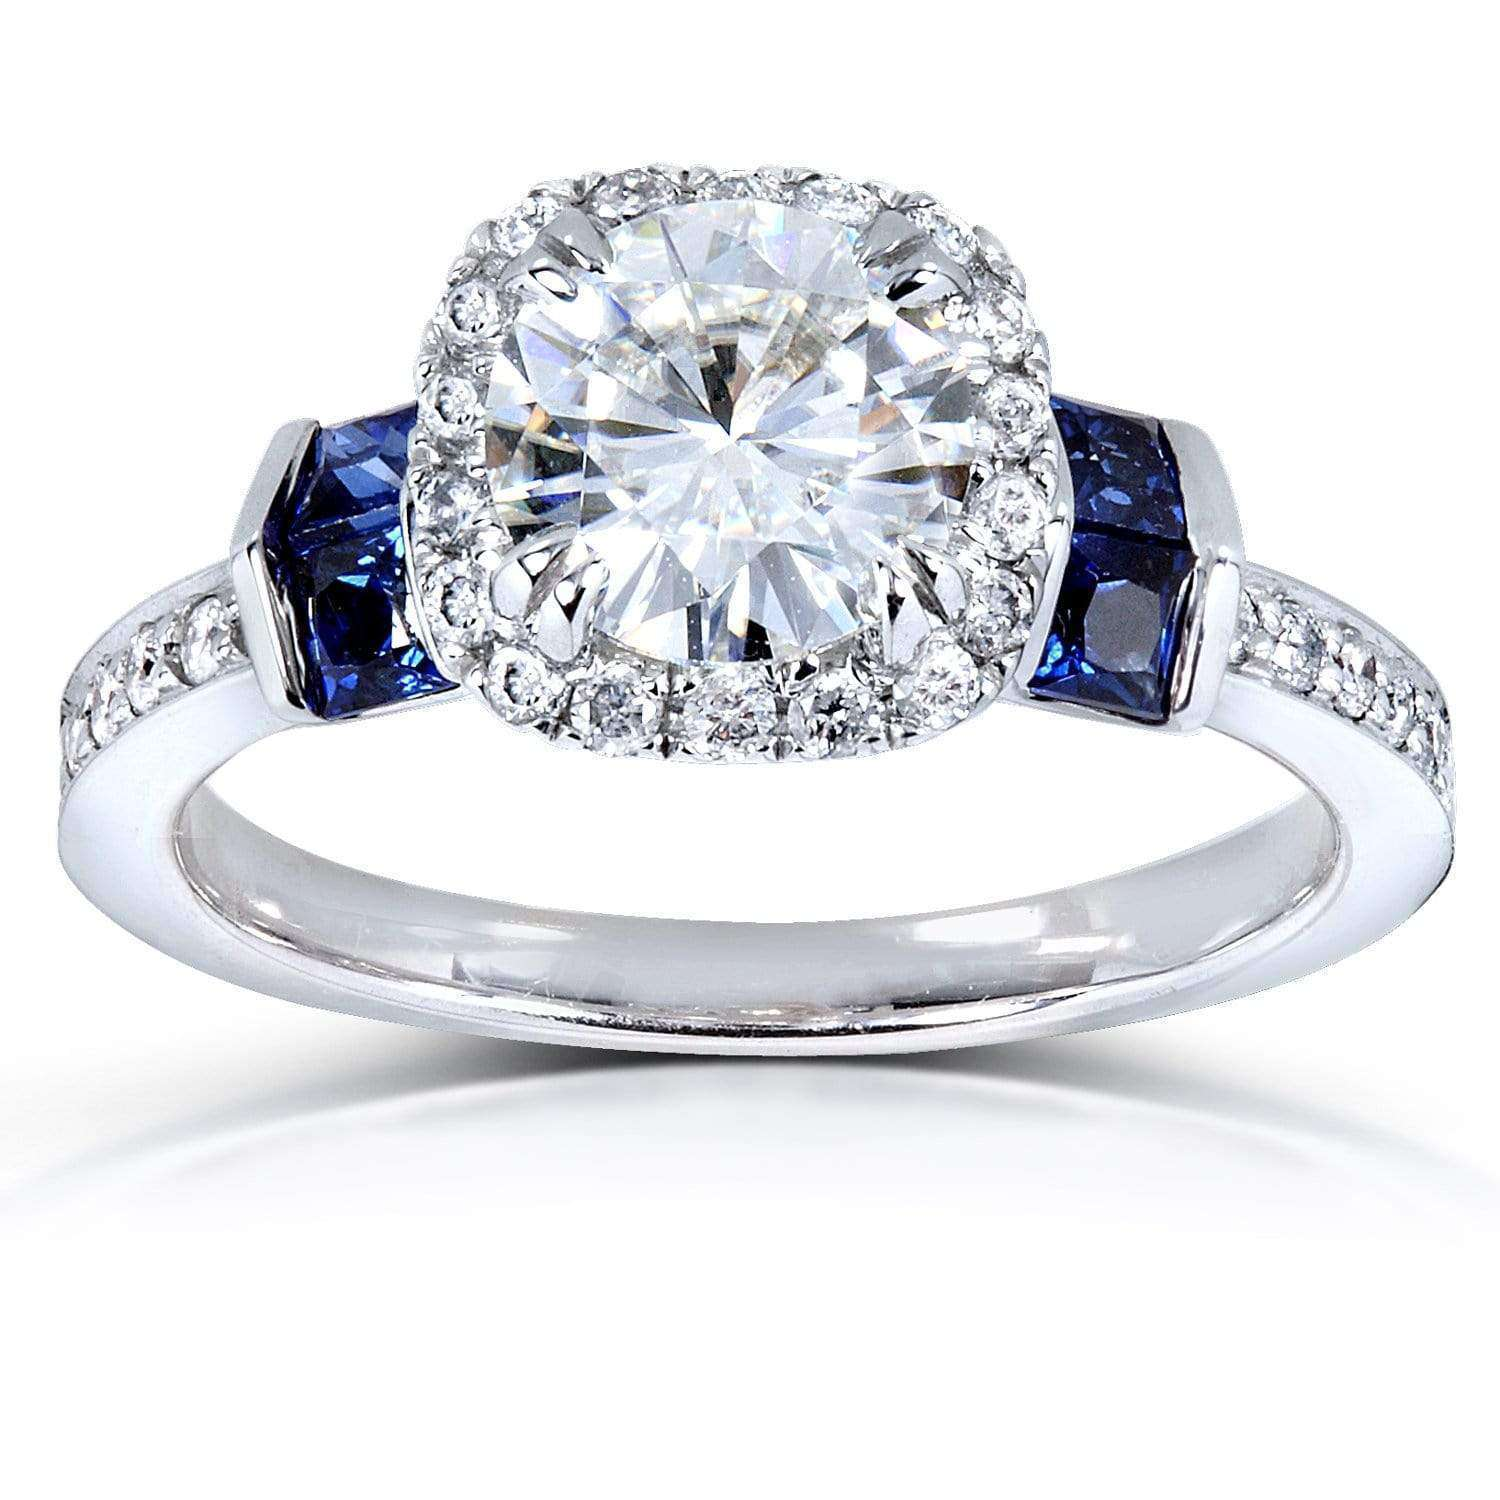 Compare Near-Colorless (F-G) Moissanite with Diamond & Blue Sapphire Engagement Ring 1 3/5 Carats TW in 14k White Gold - 5.5